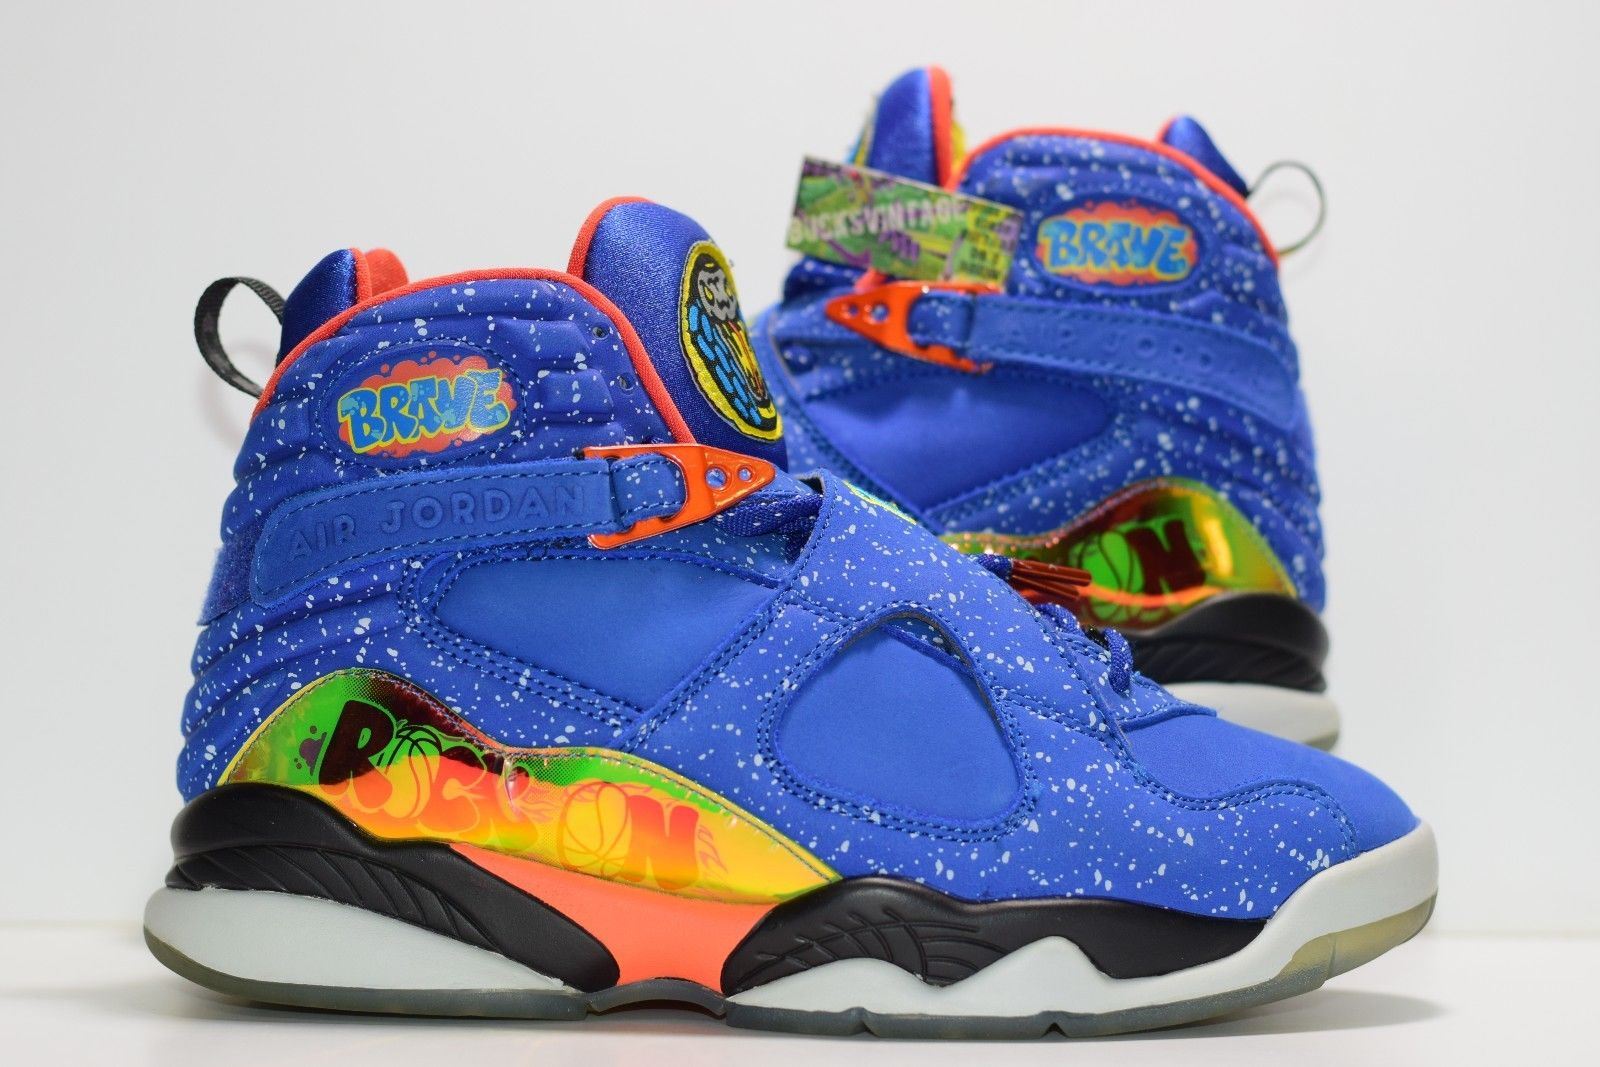 wholesale dealer 0151f 1fd21 Size 8 | 2014 NIke Air Jordan 8 Retro Doernbecher from BucksVintage